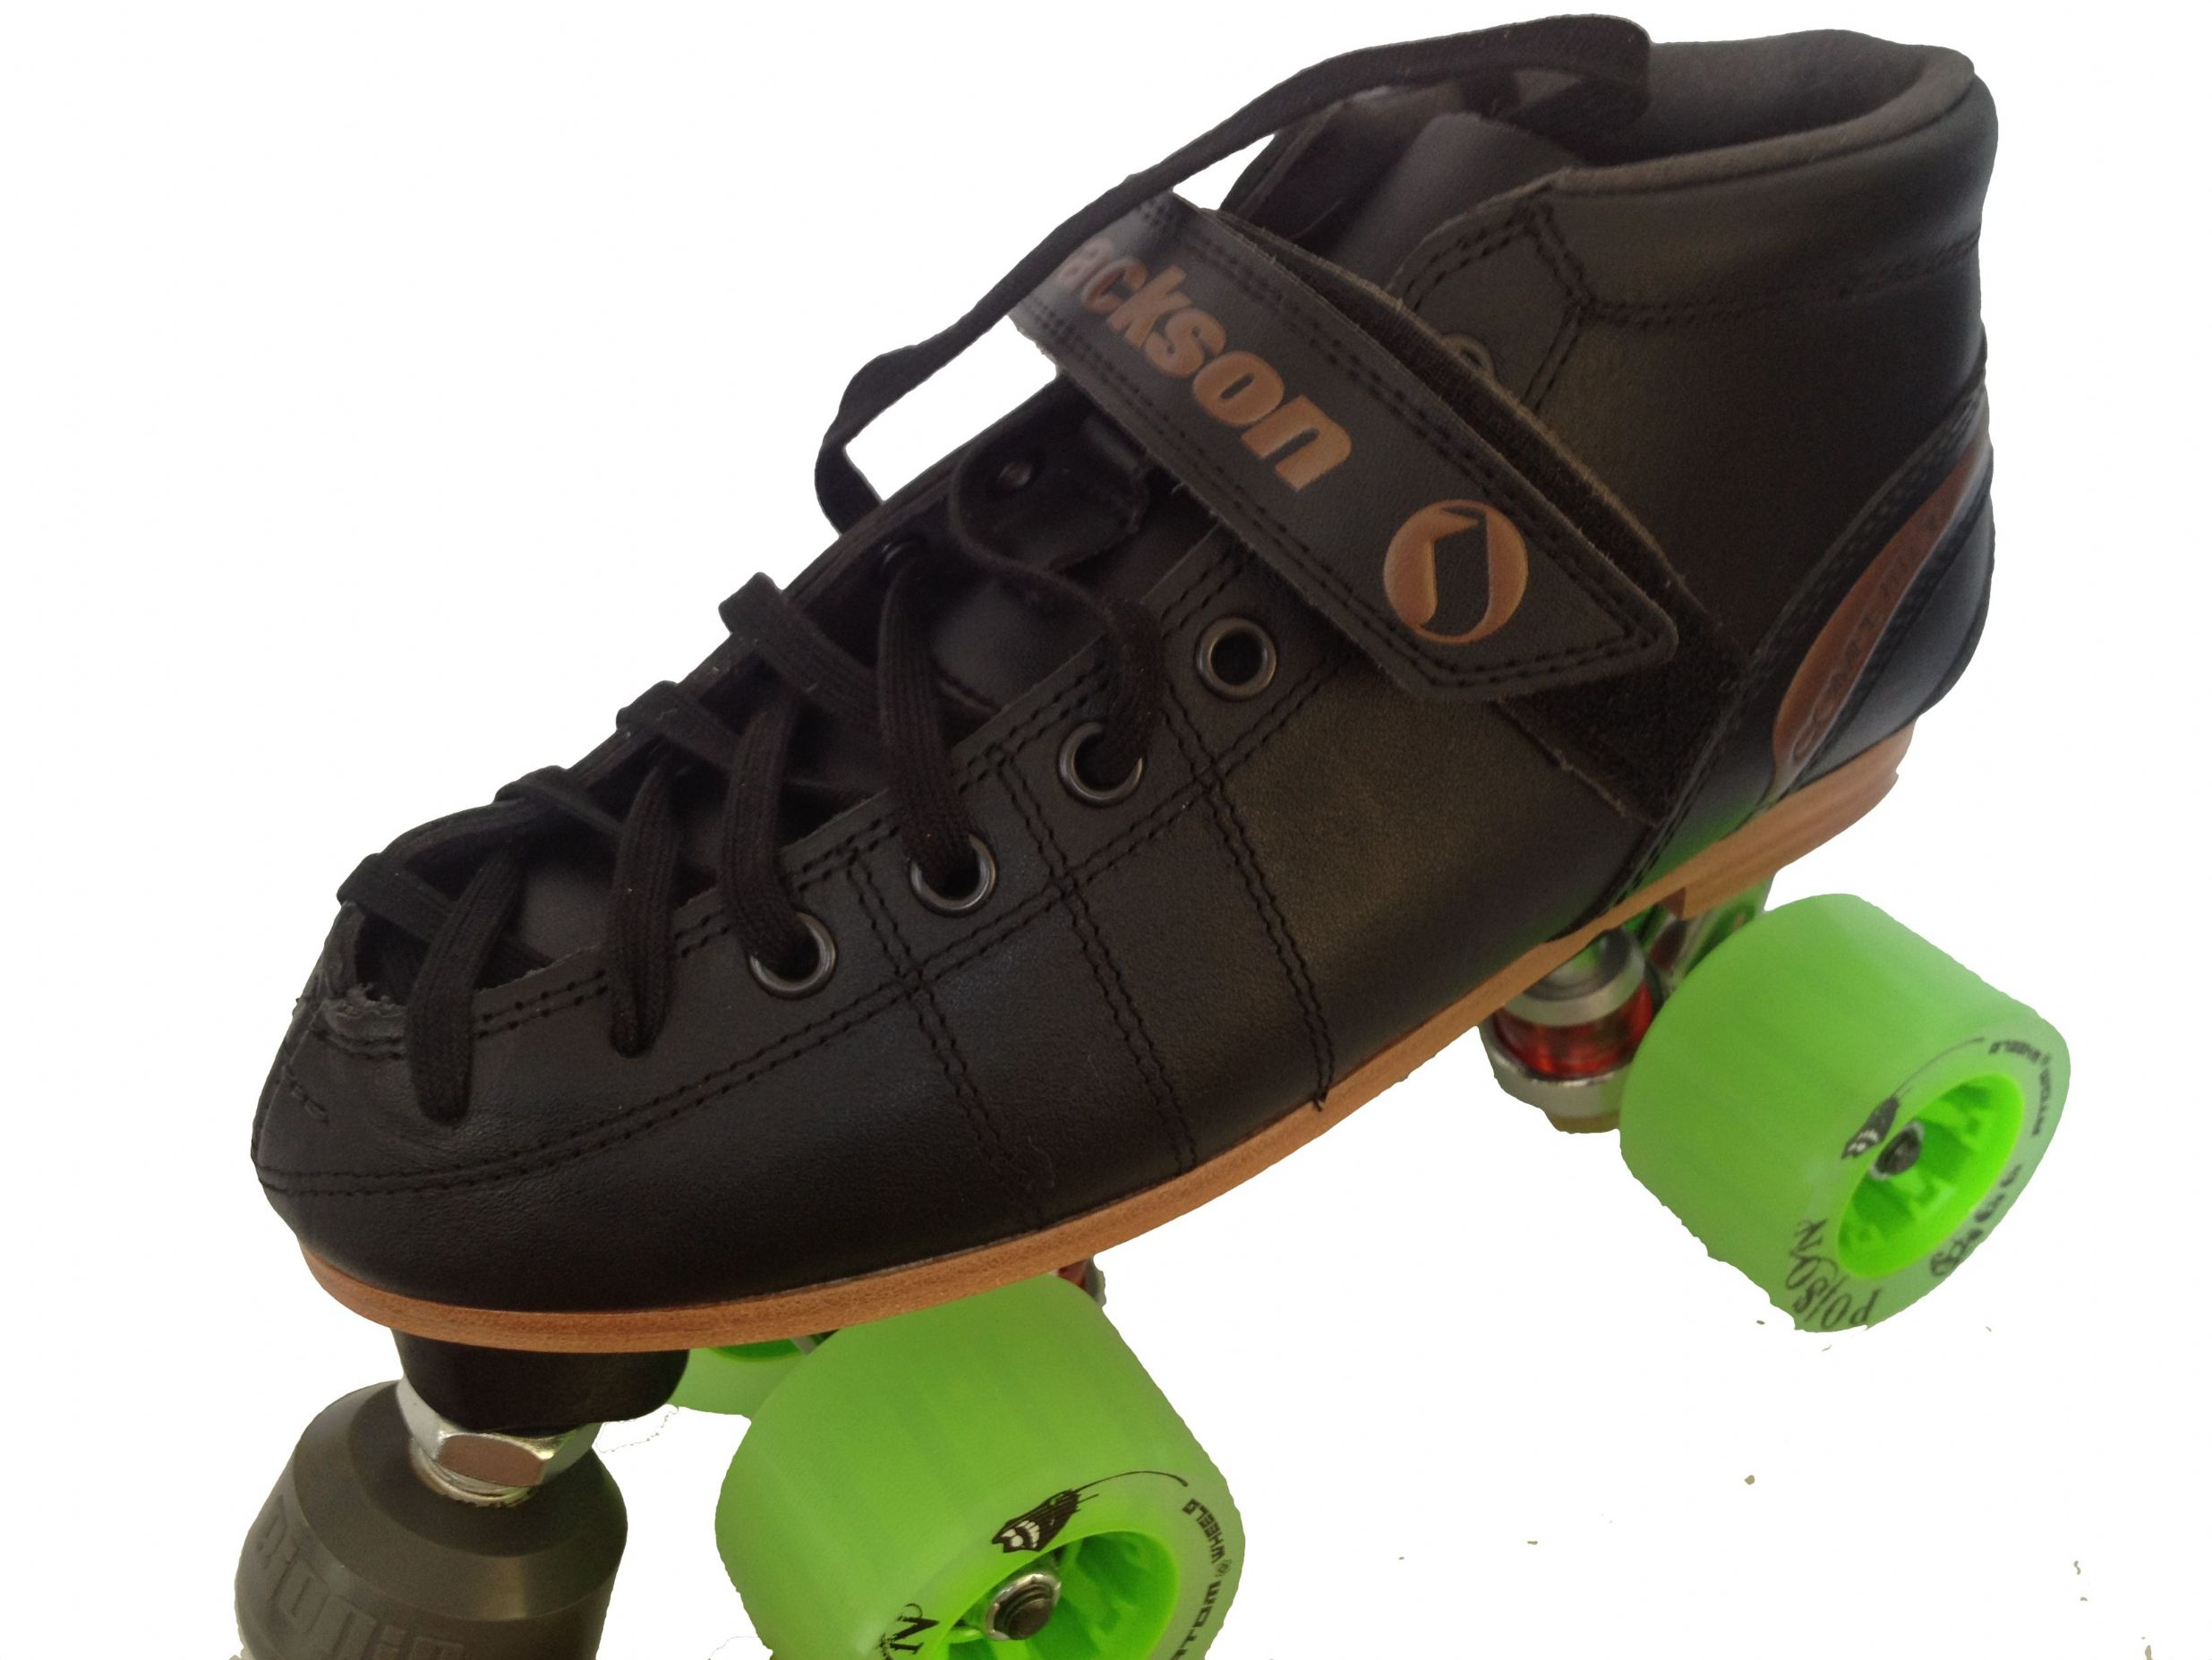 Roller skates jackson